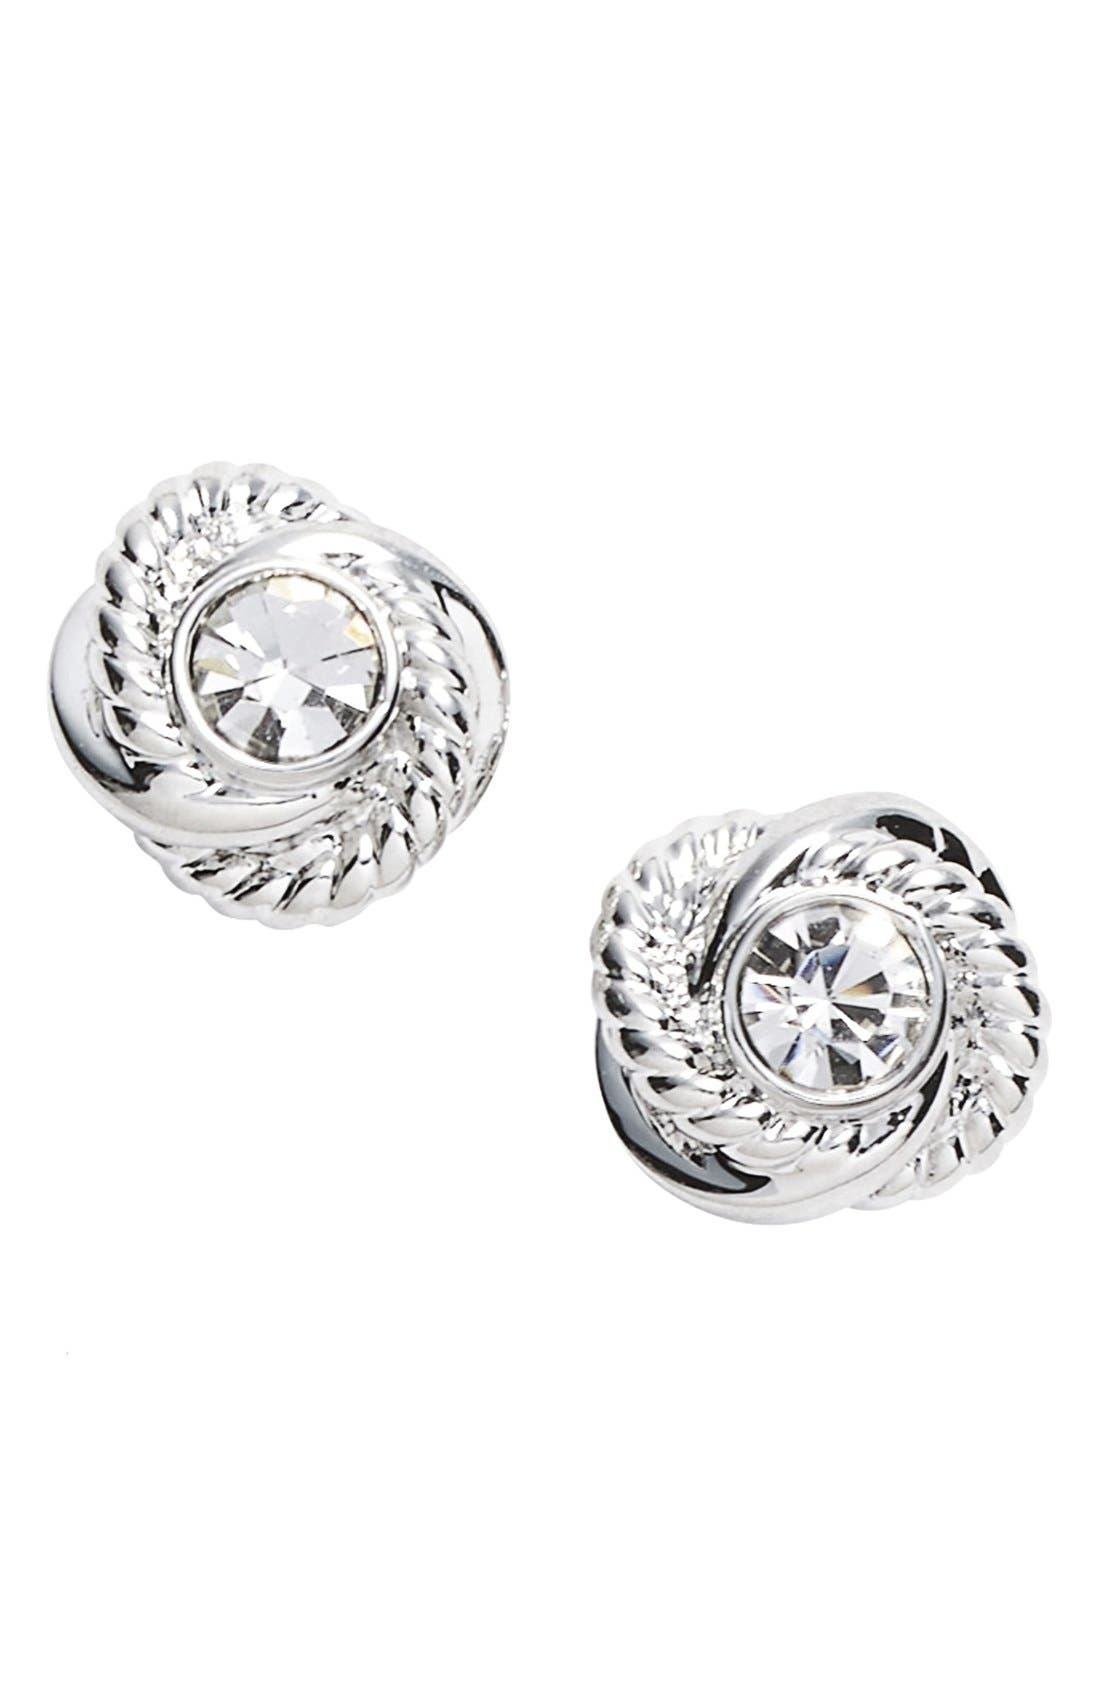 'infinity and beyond' knot earrings,                         Main,                         color, Clear/ Silver